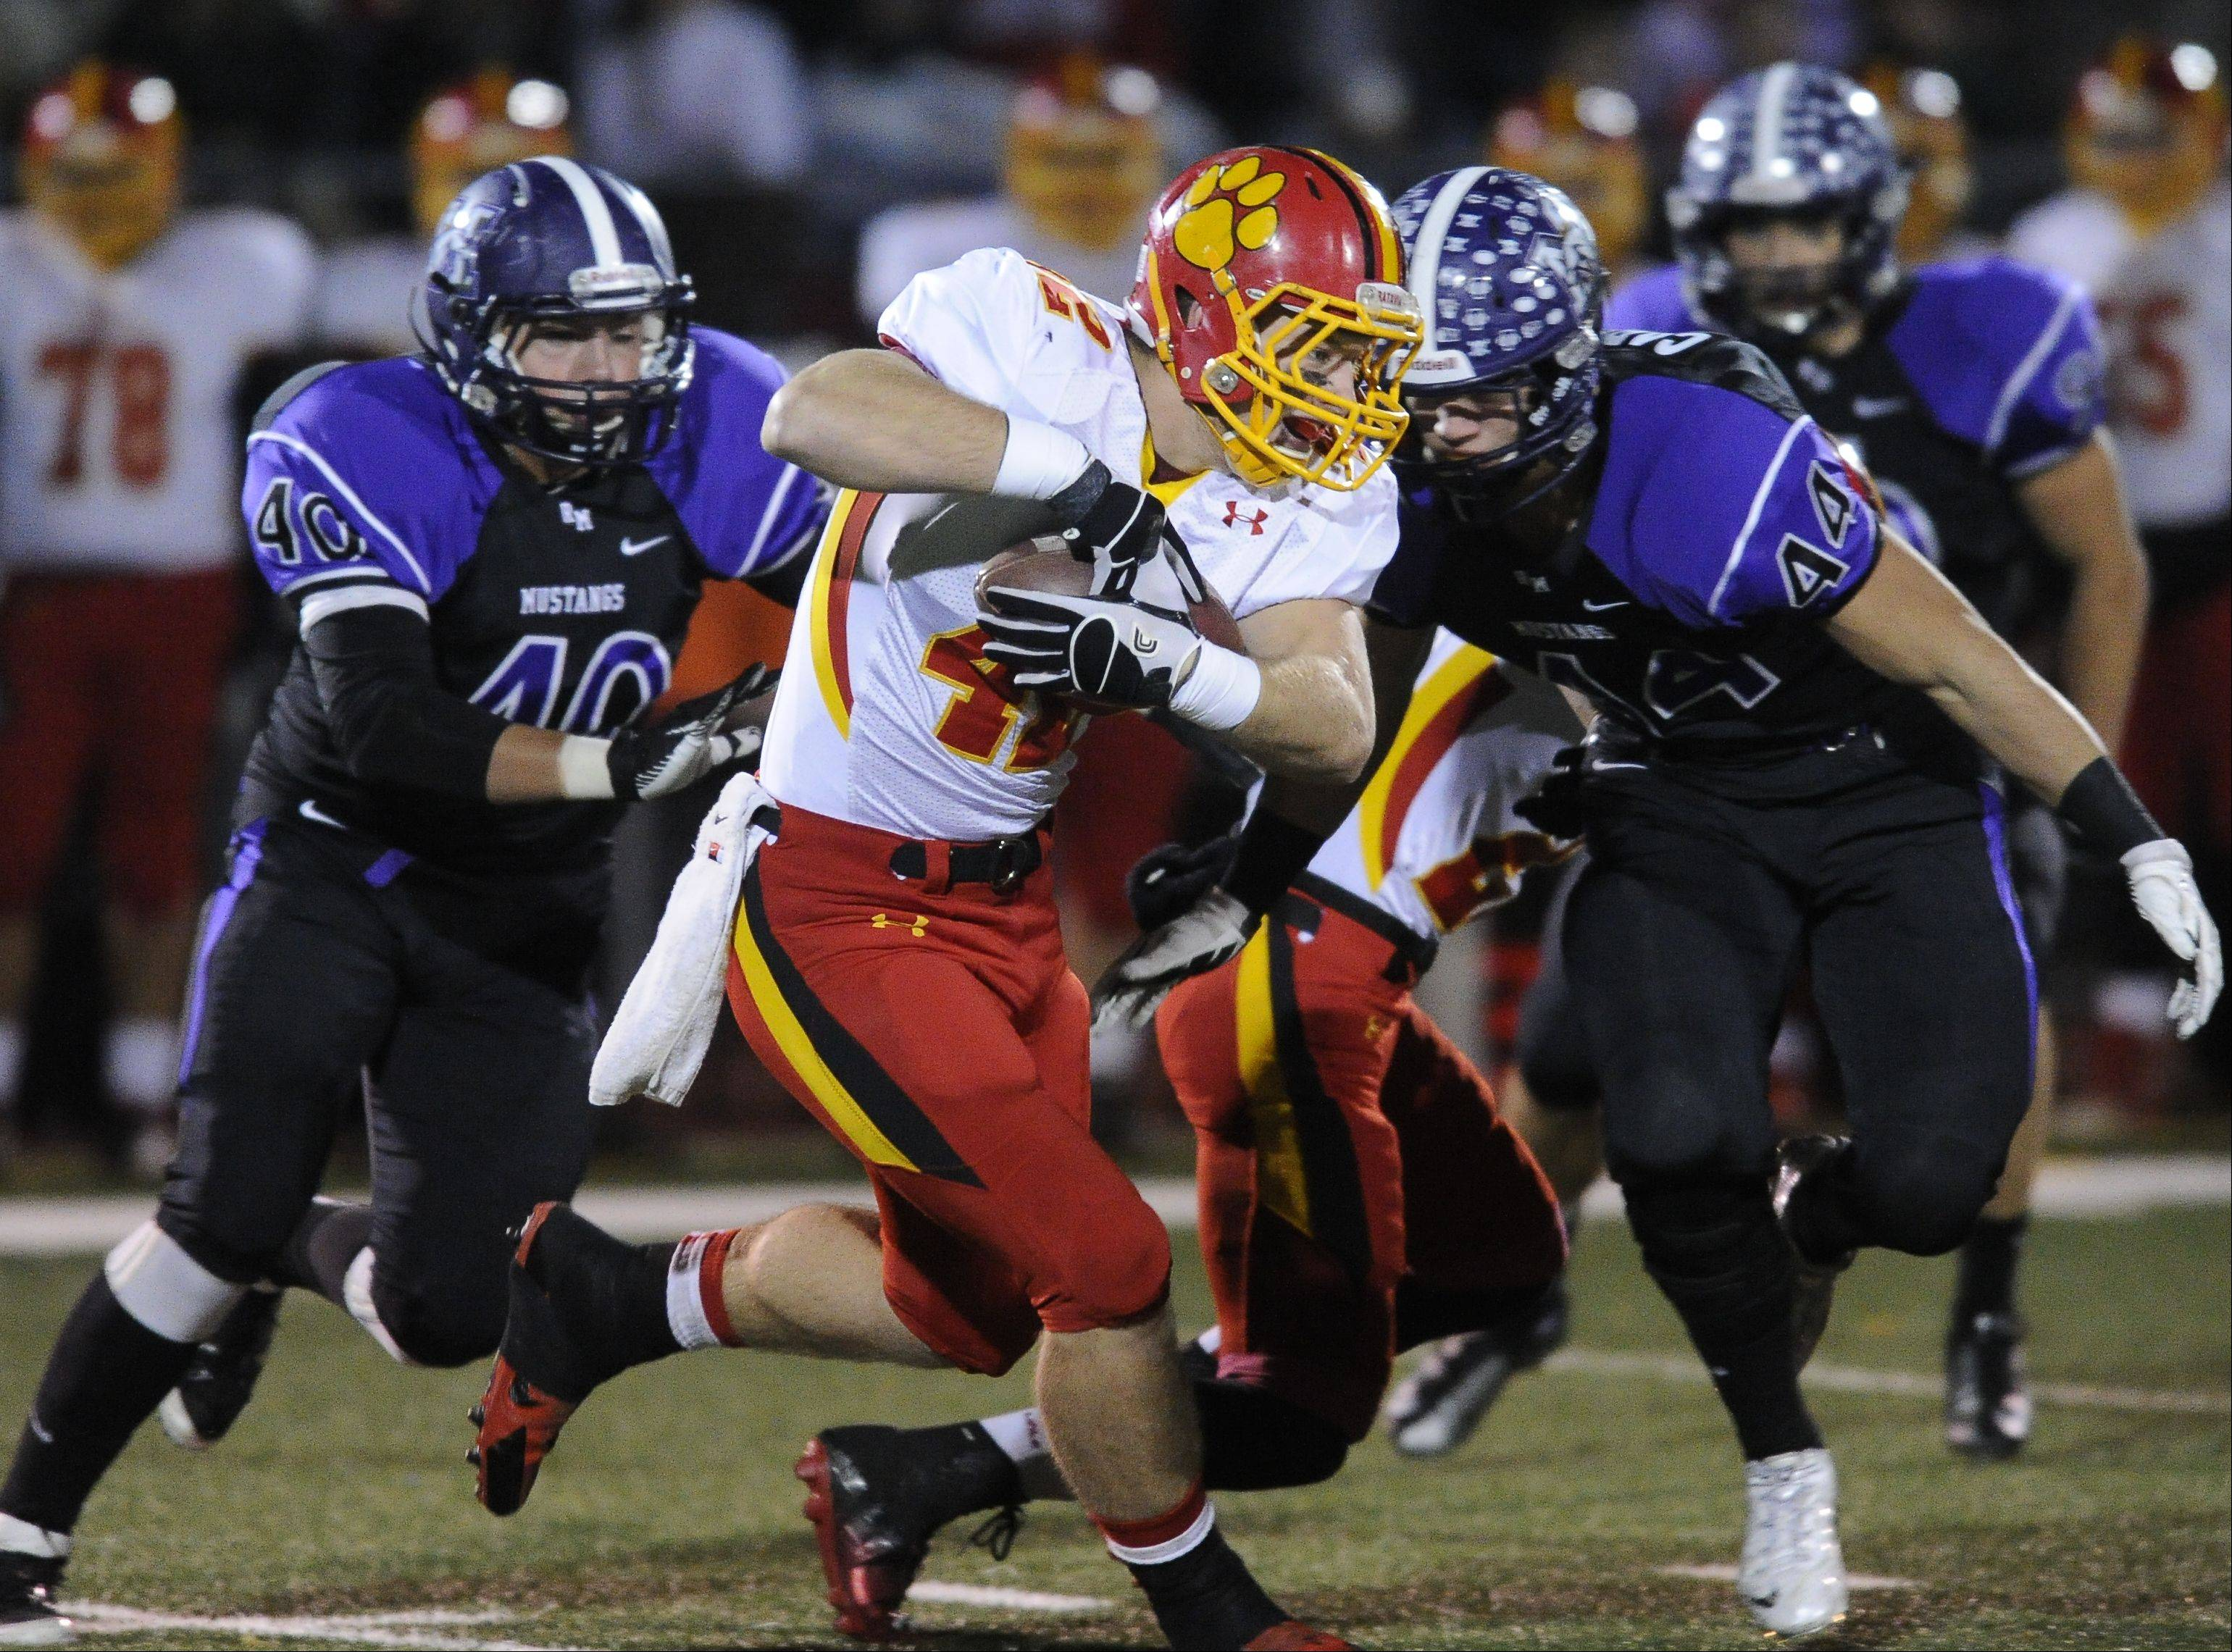 Playoffs-Round Two - Photos from the Rolling Meadows vs Batavia 6A playoff football game on Saturday, November 9th, in Rolling Meadows.